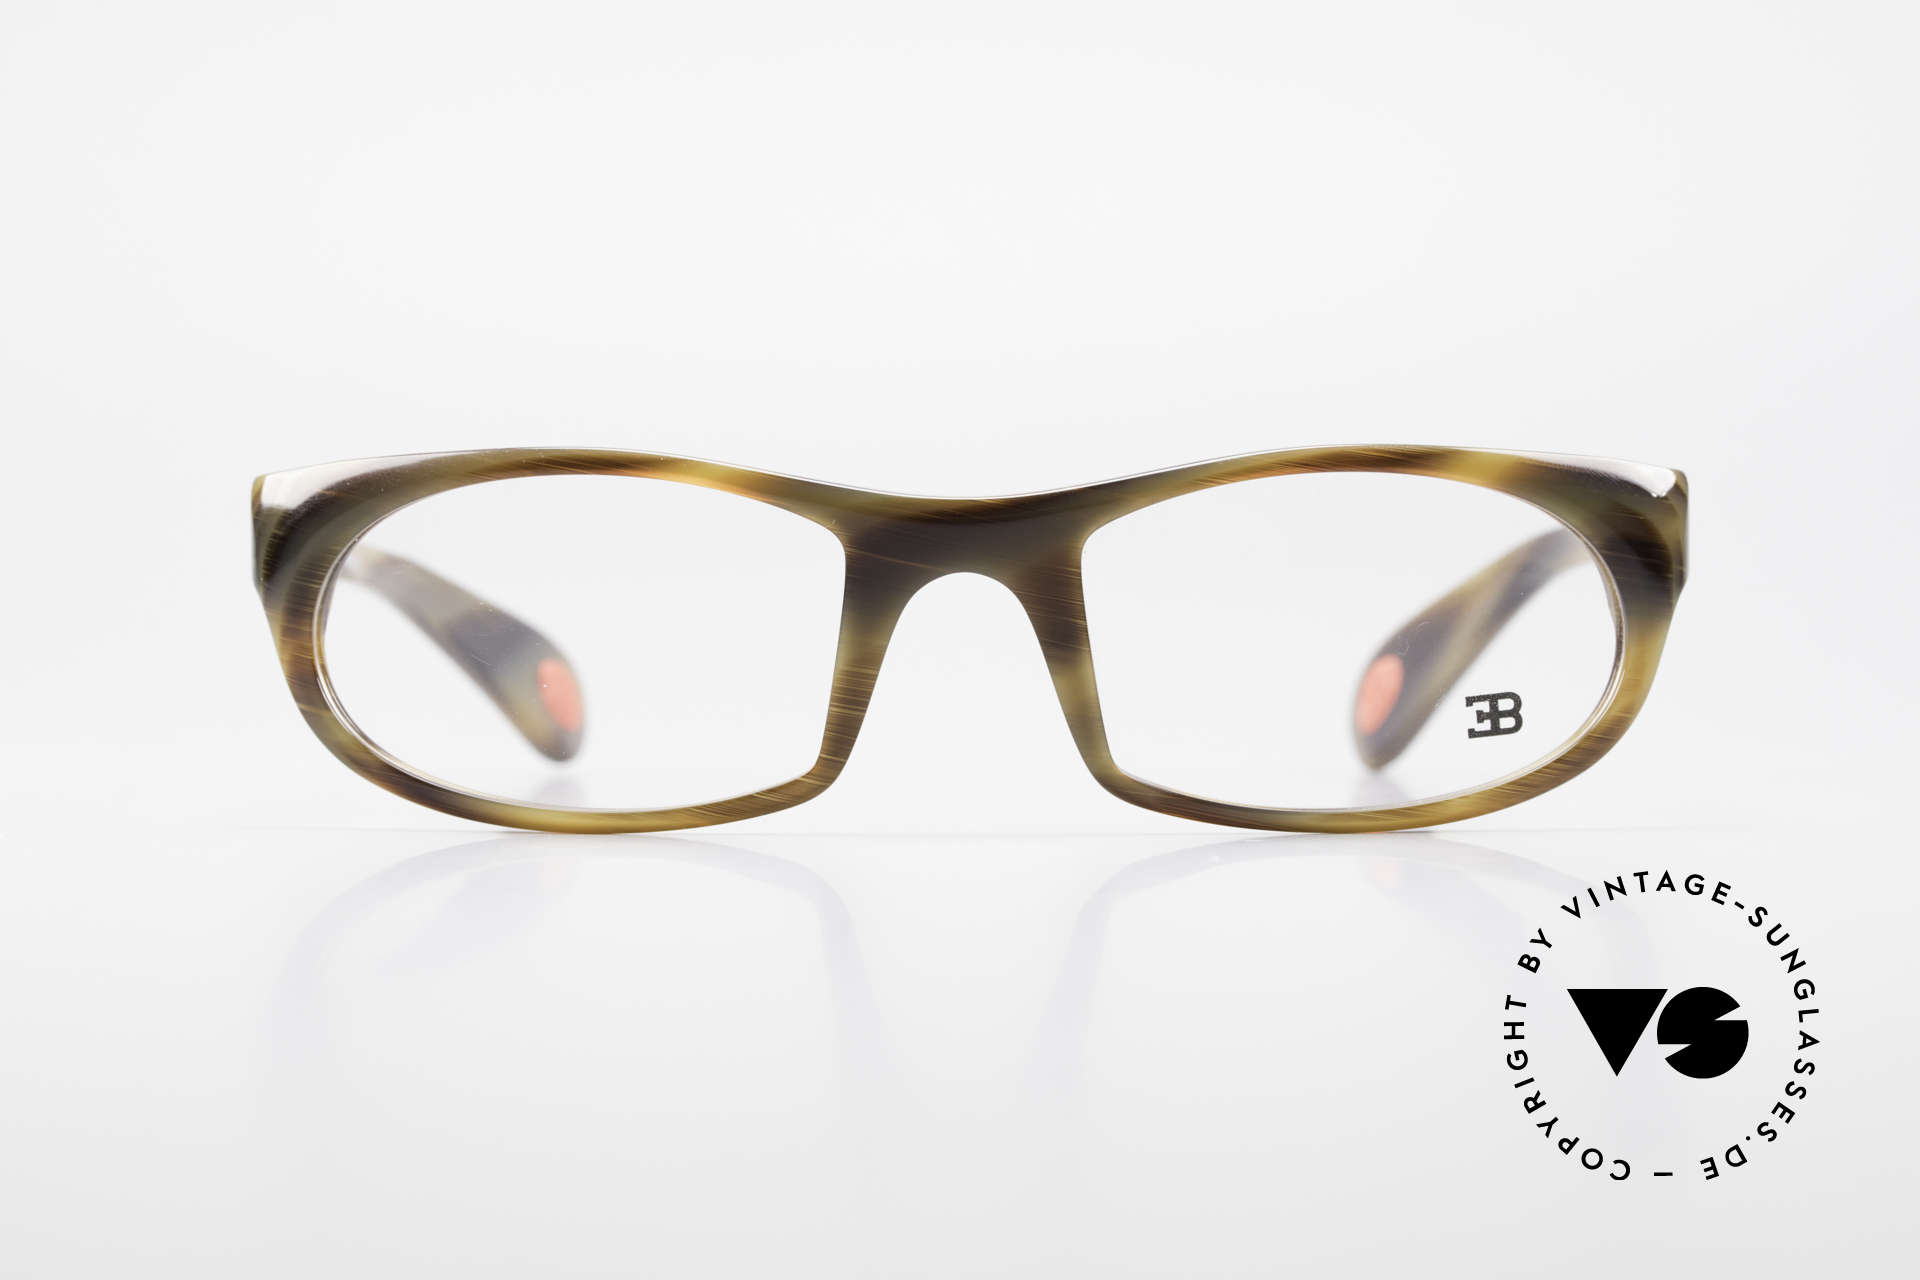 Bugatti 326 Odotype True Vintage Eyeglass-Frame, distinctive design of the ODOTYPE SERIES, Made for Men